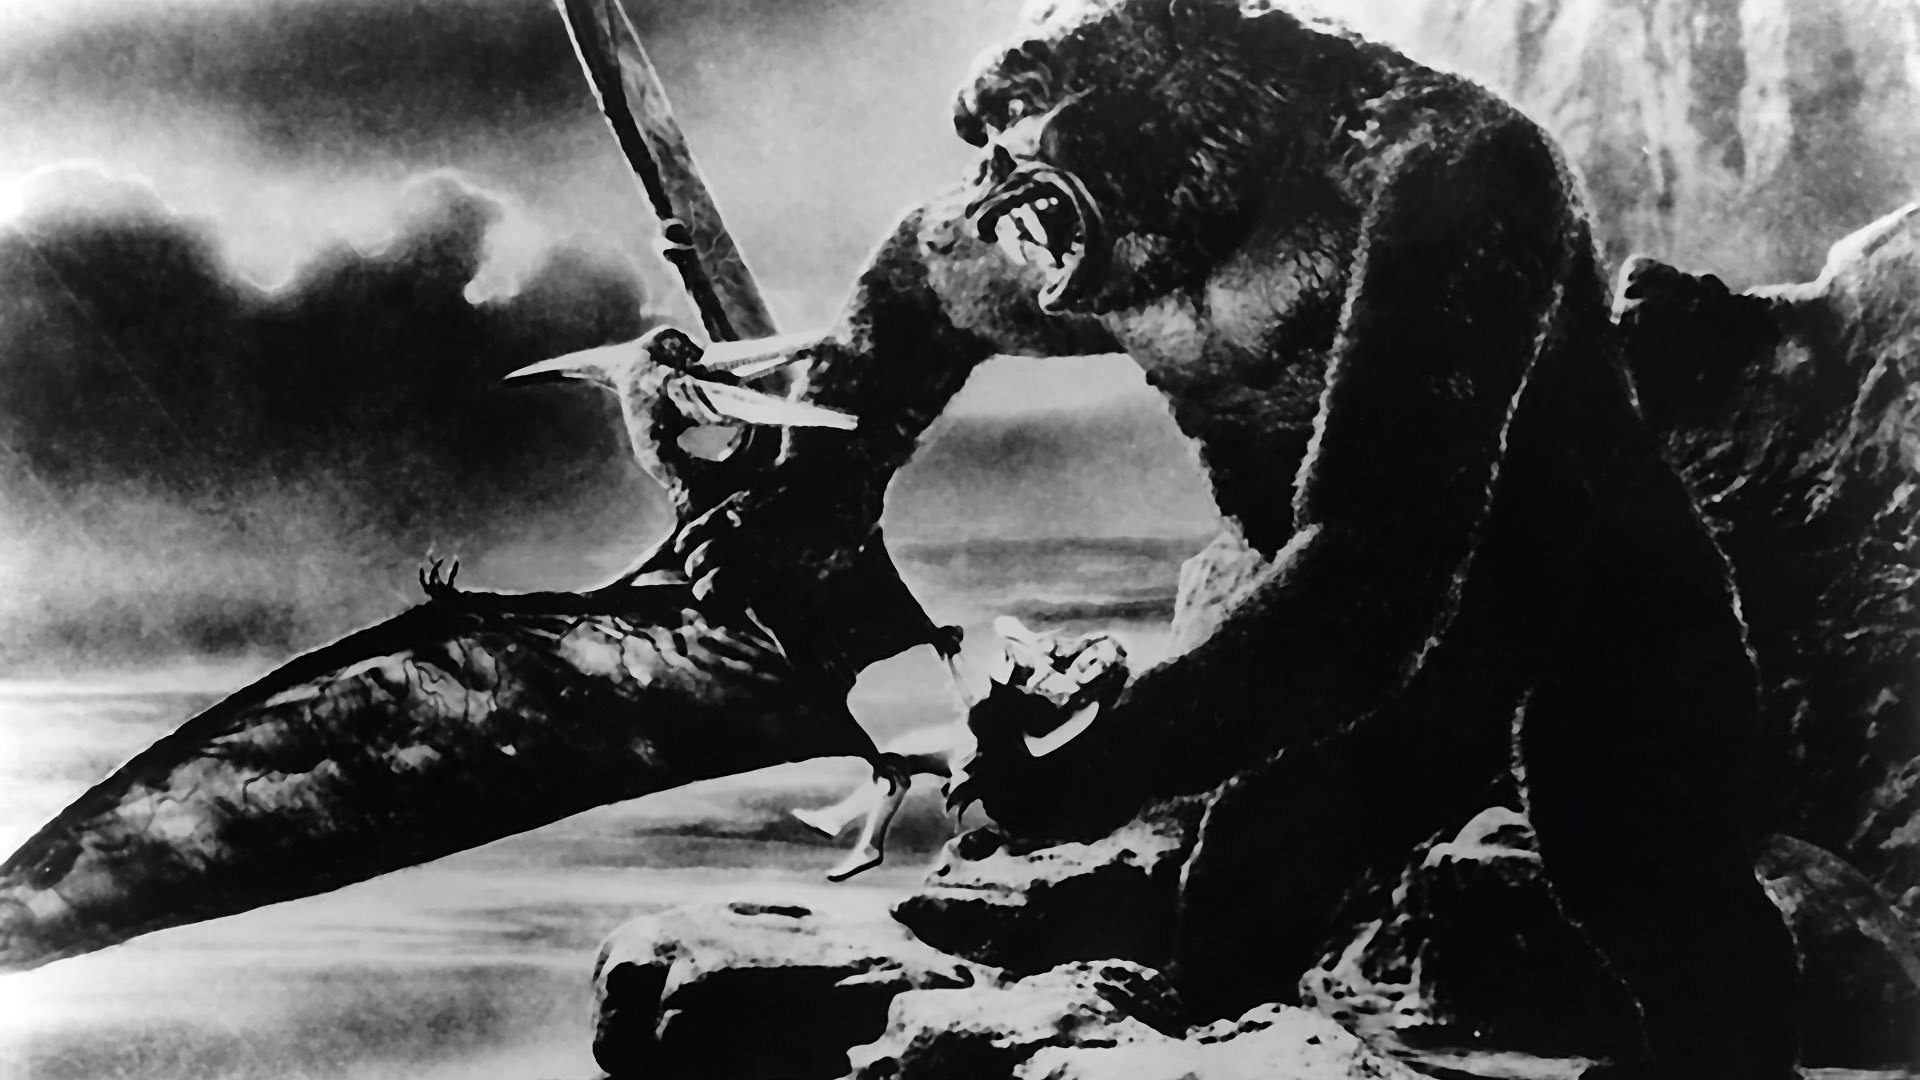 1920x1080 #1702609, HD Widescreen Wallpapers - king kong 1933 picture